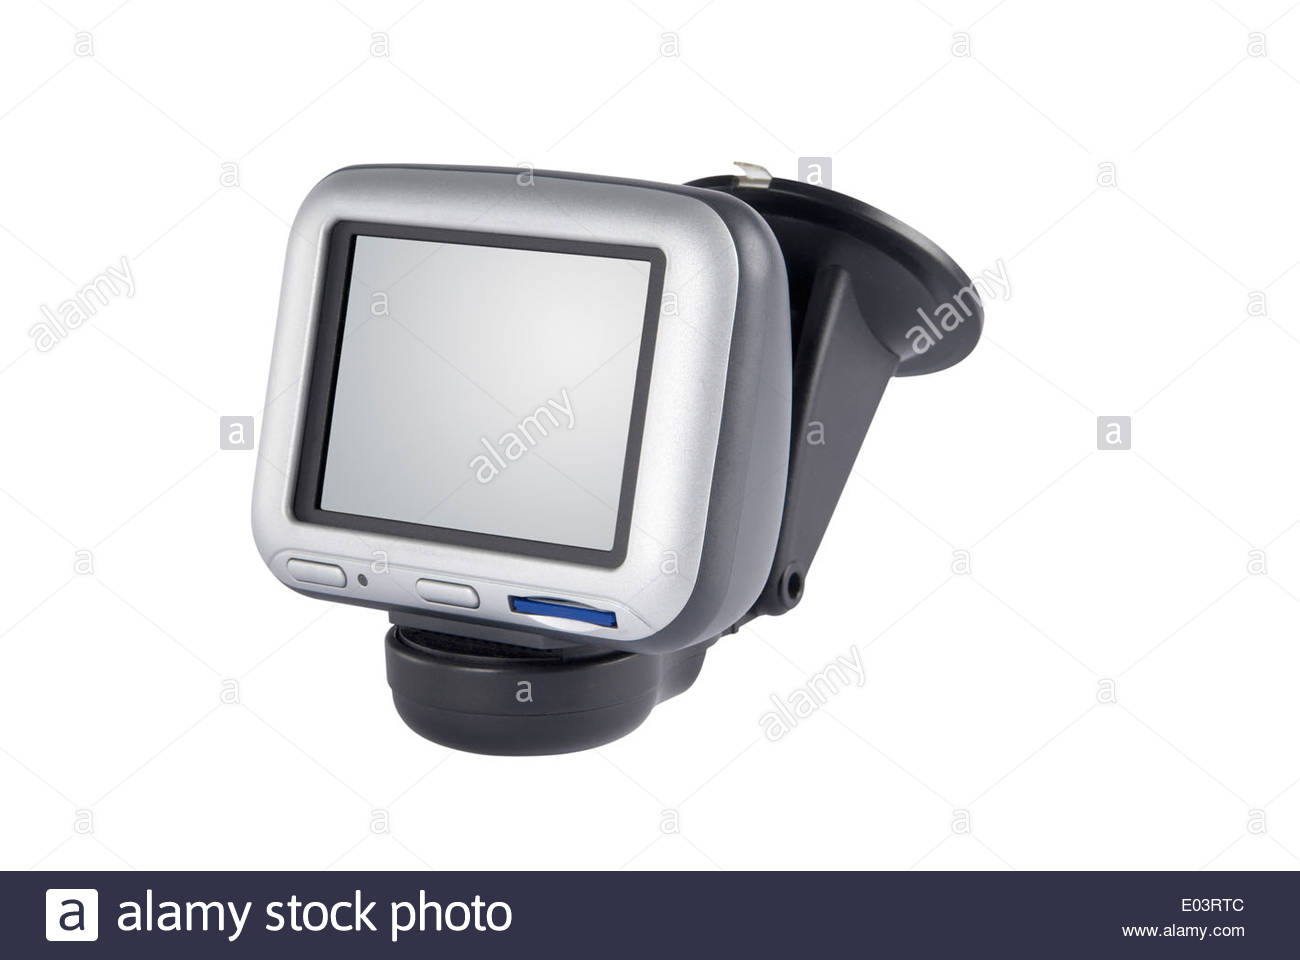 Satellite navigation unit isolated on white with path. Blank screen with path. - Stock Image